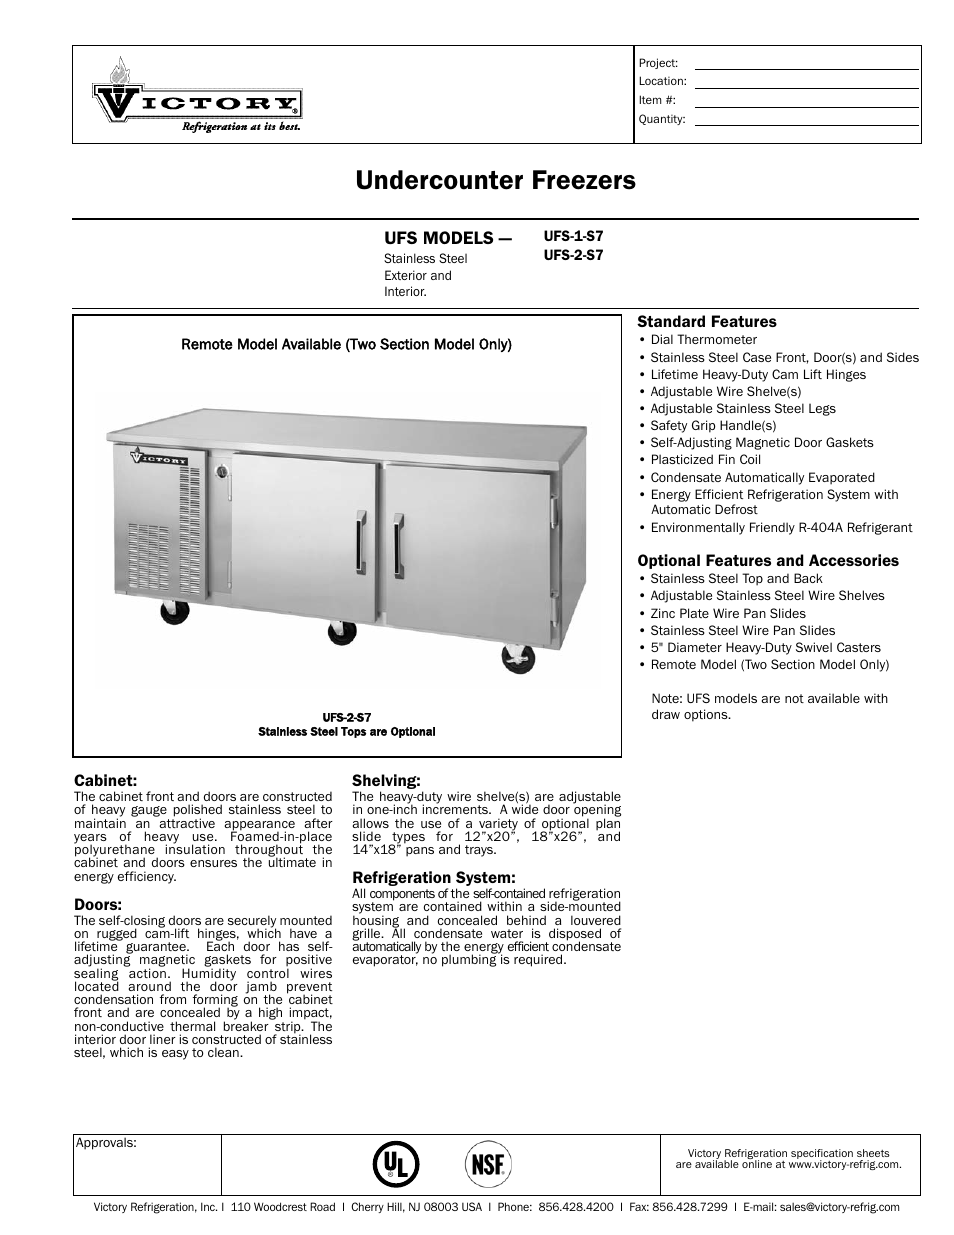 victory refrigeration ufs 2 s7 user manual 2 pages also for ufs